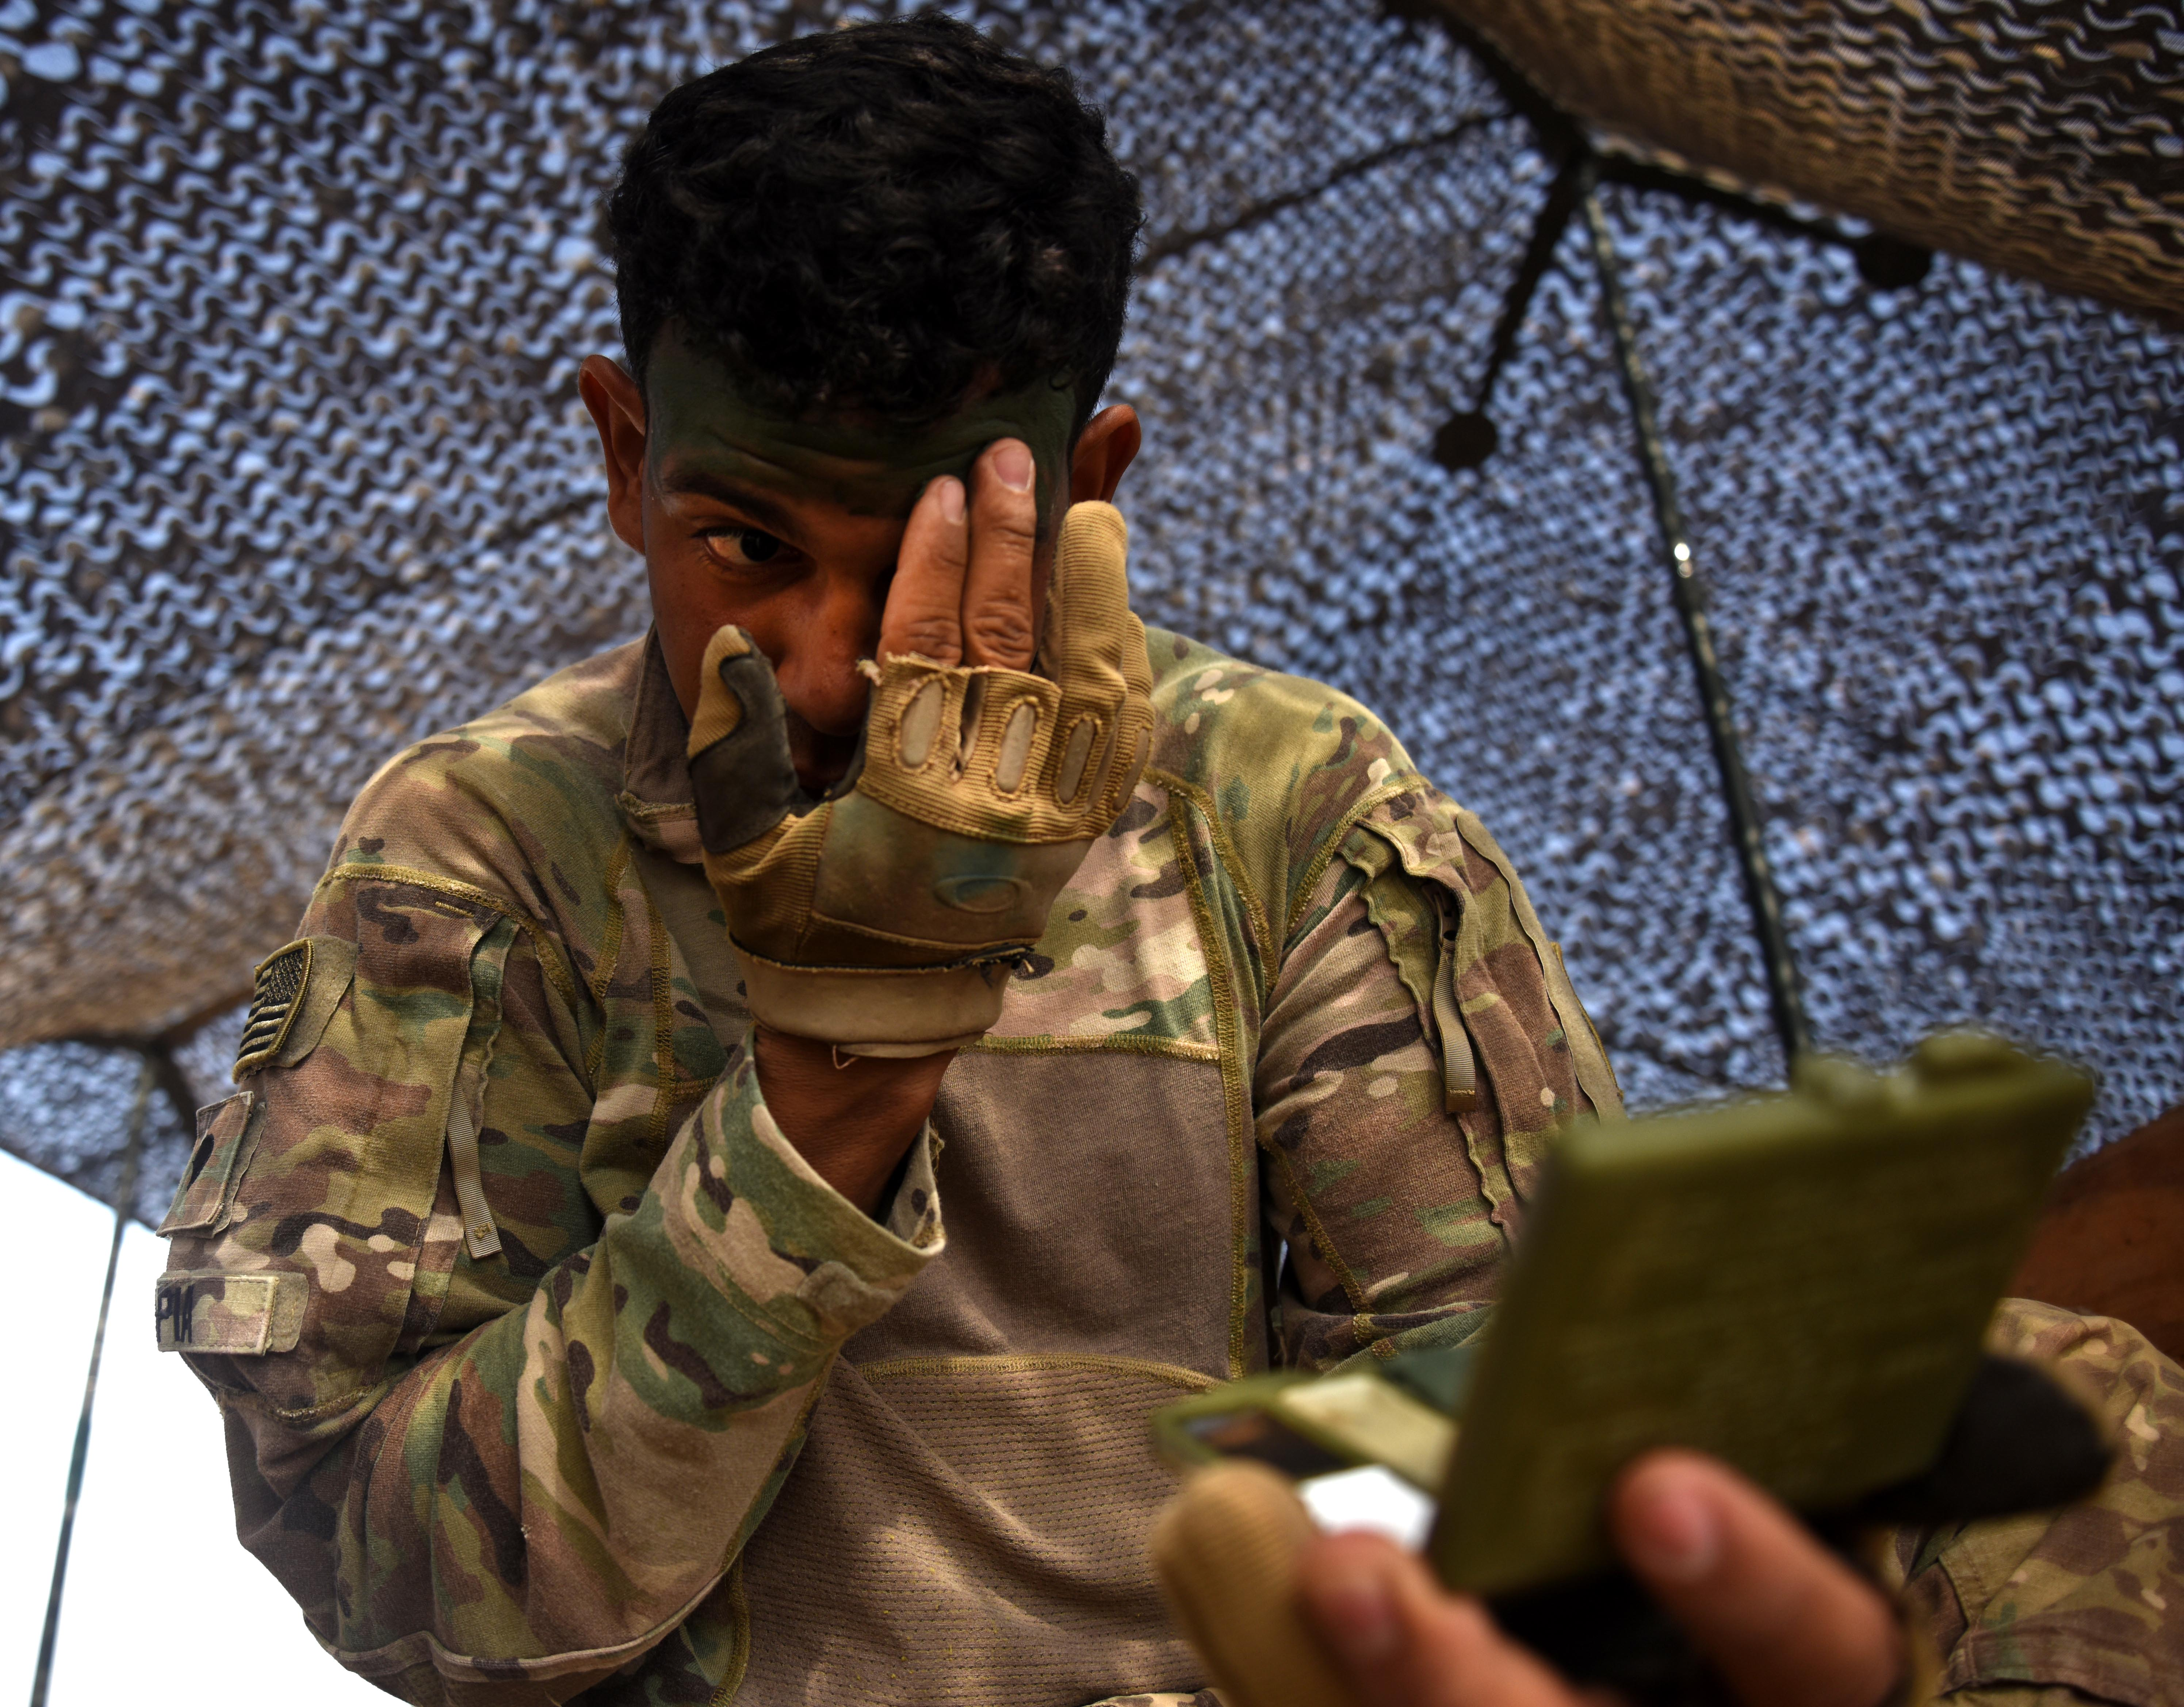 U.S. Army Spc. Eddie Tapia, Expert Infantry Badge candidate, applies camouflage paint to his face March 31, 2016, during the patrolling portion of the EIB course at Camp Lemonnier, Djibouti. Besides painting their faces and covering equipment with burlap, candidates ensured shiny or brightly colored objects were removed to prevent giving away their position. (U.S. Air Force photo by Staff Sgt. Kate Thornton)